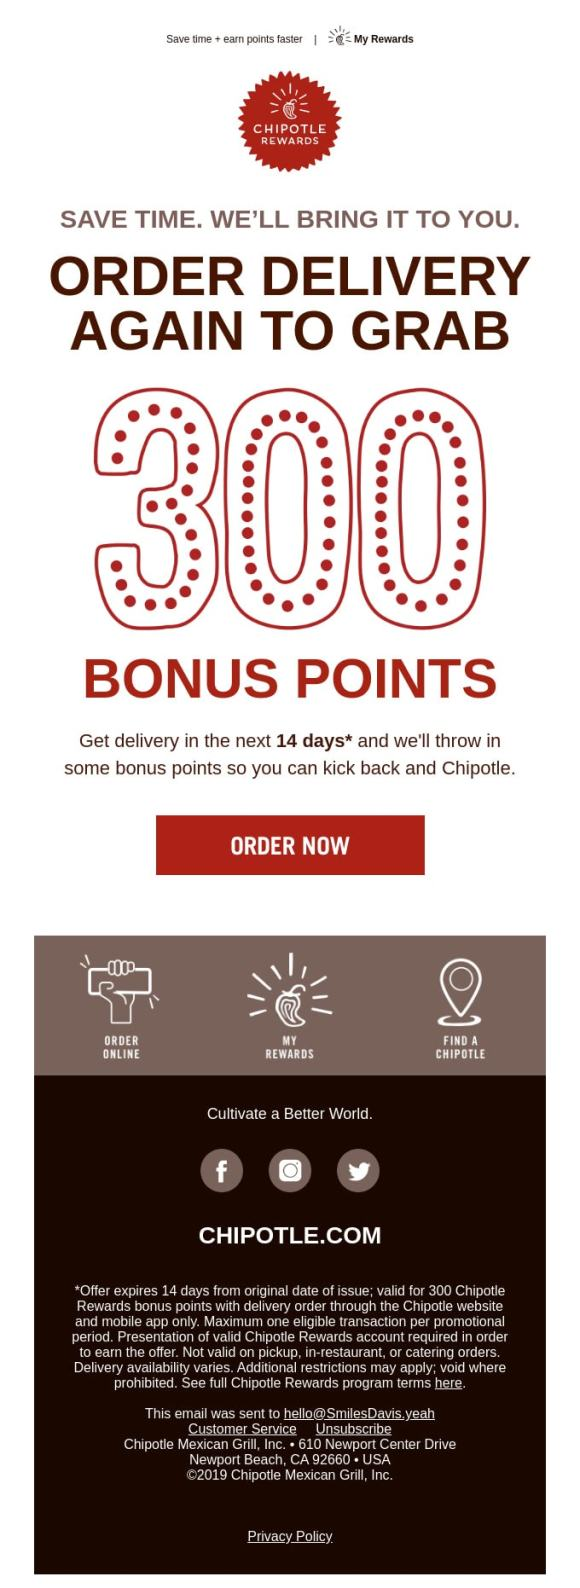 Email Design from Chipotle